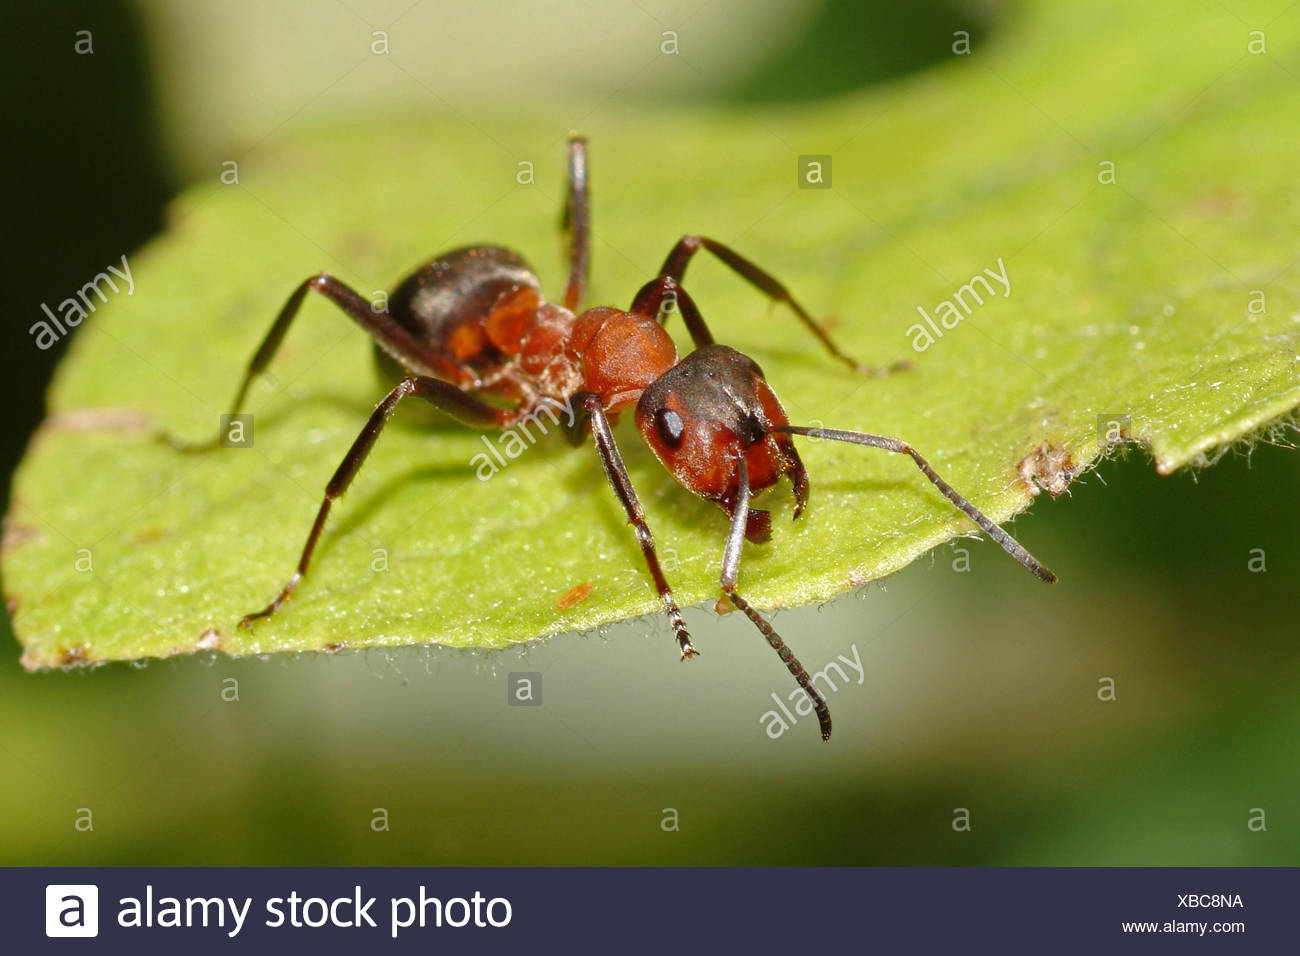 Southern wood ant, Horse ant (Formica rufa), on a leaf, Germany Stock Photo